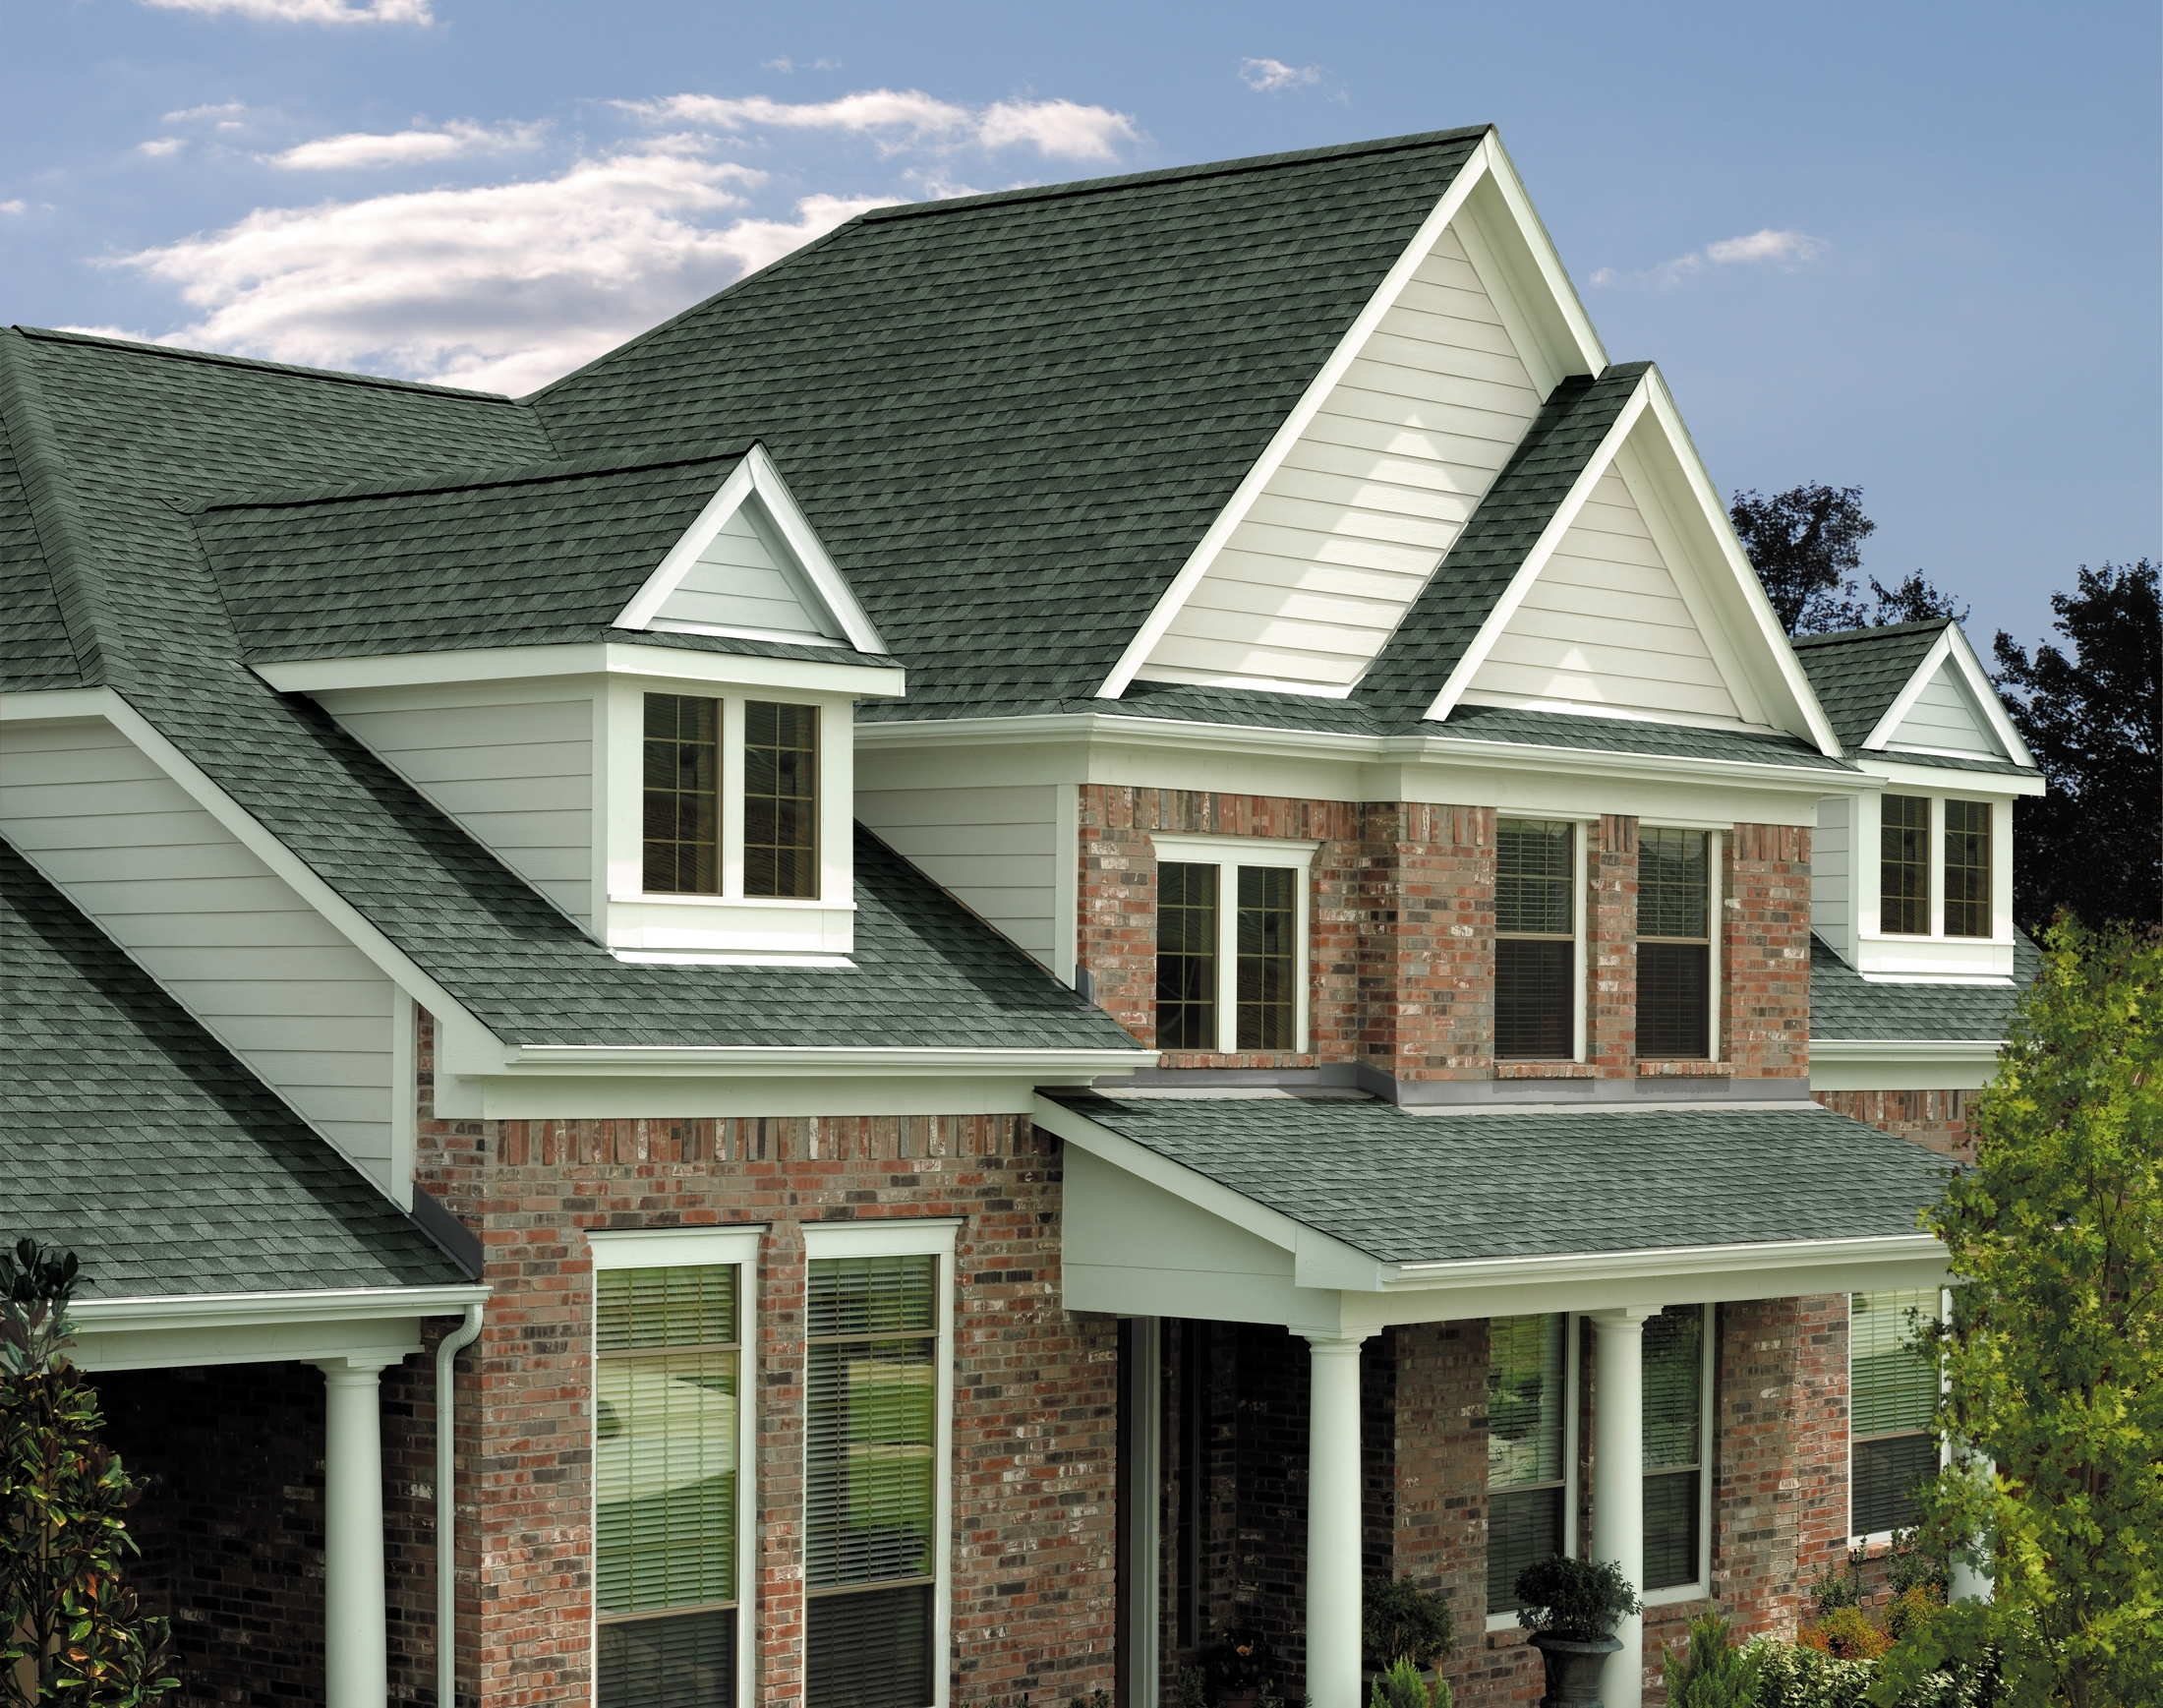 Advanced Roofing Inc In Yorkville Il 60560